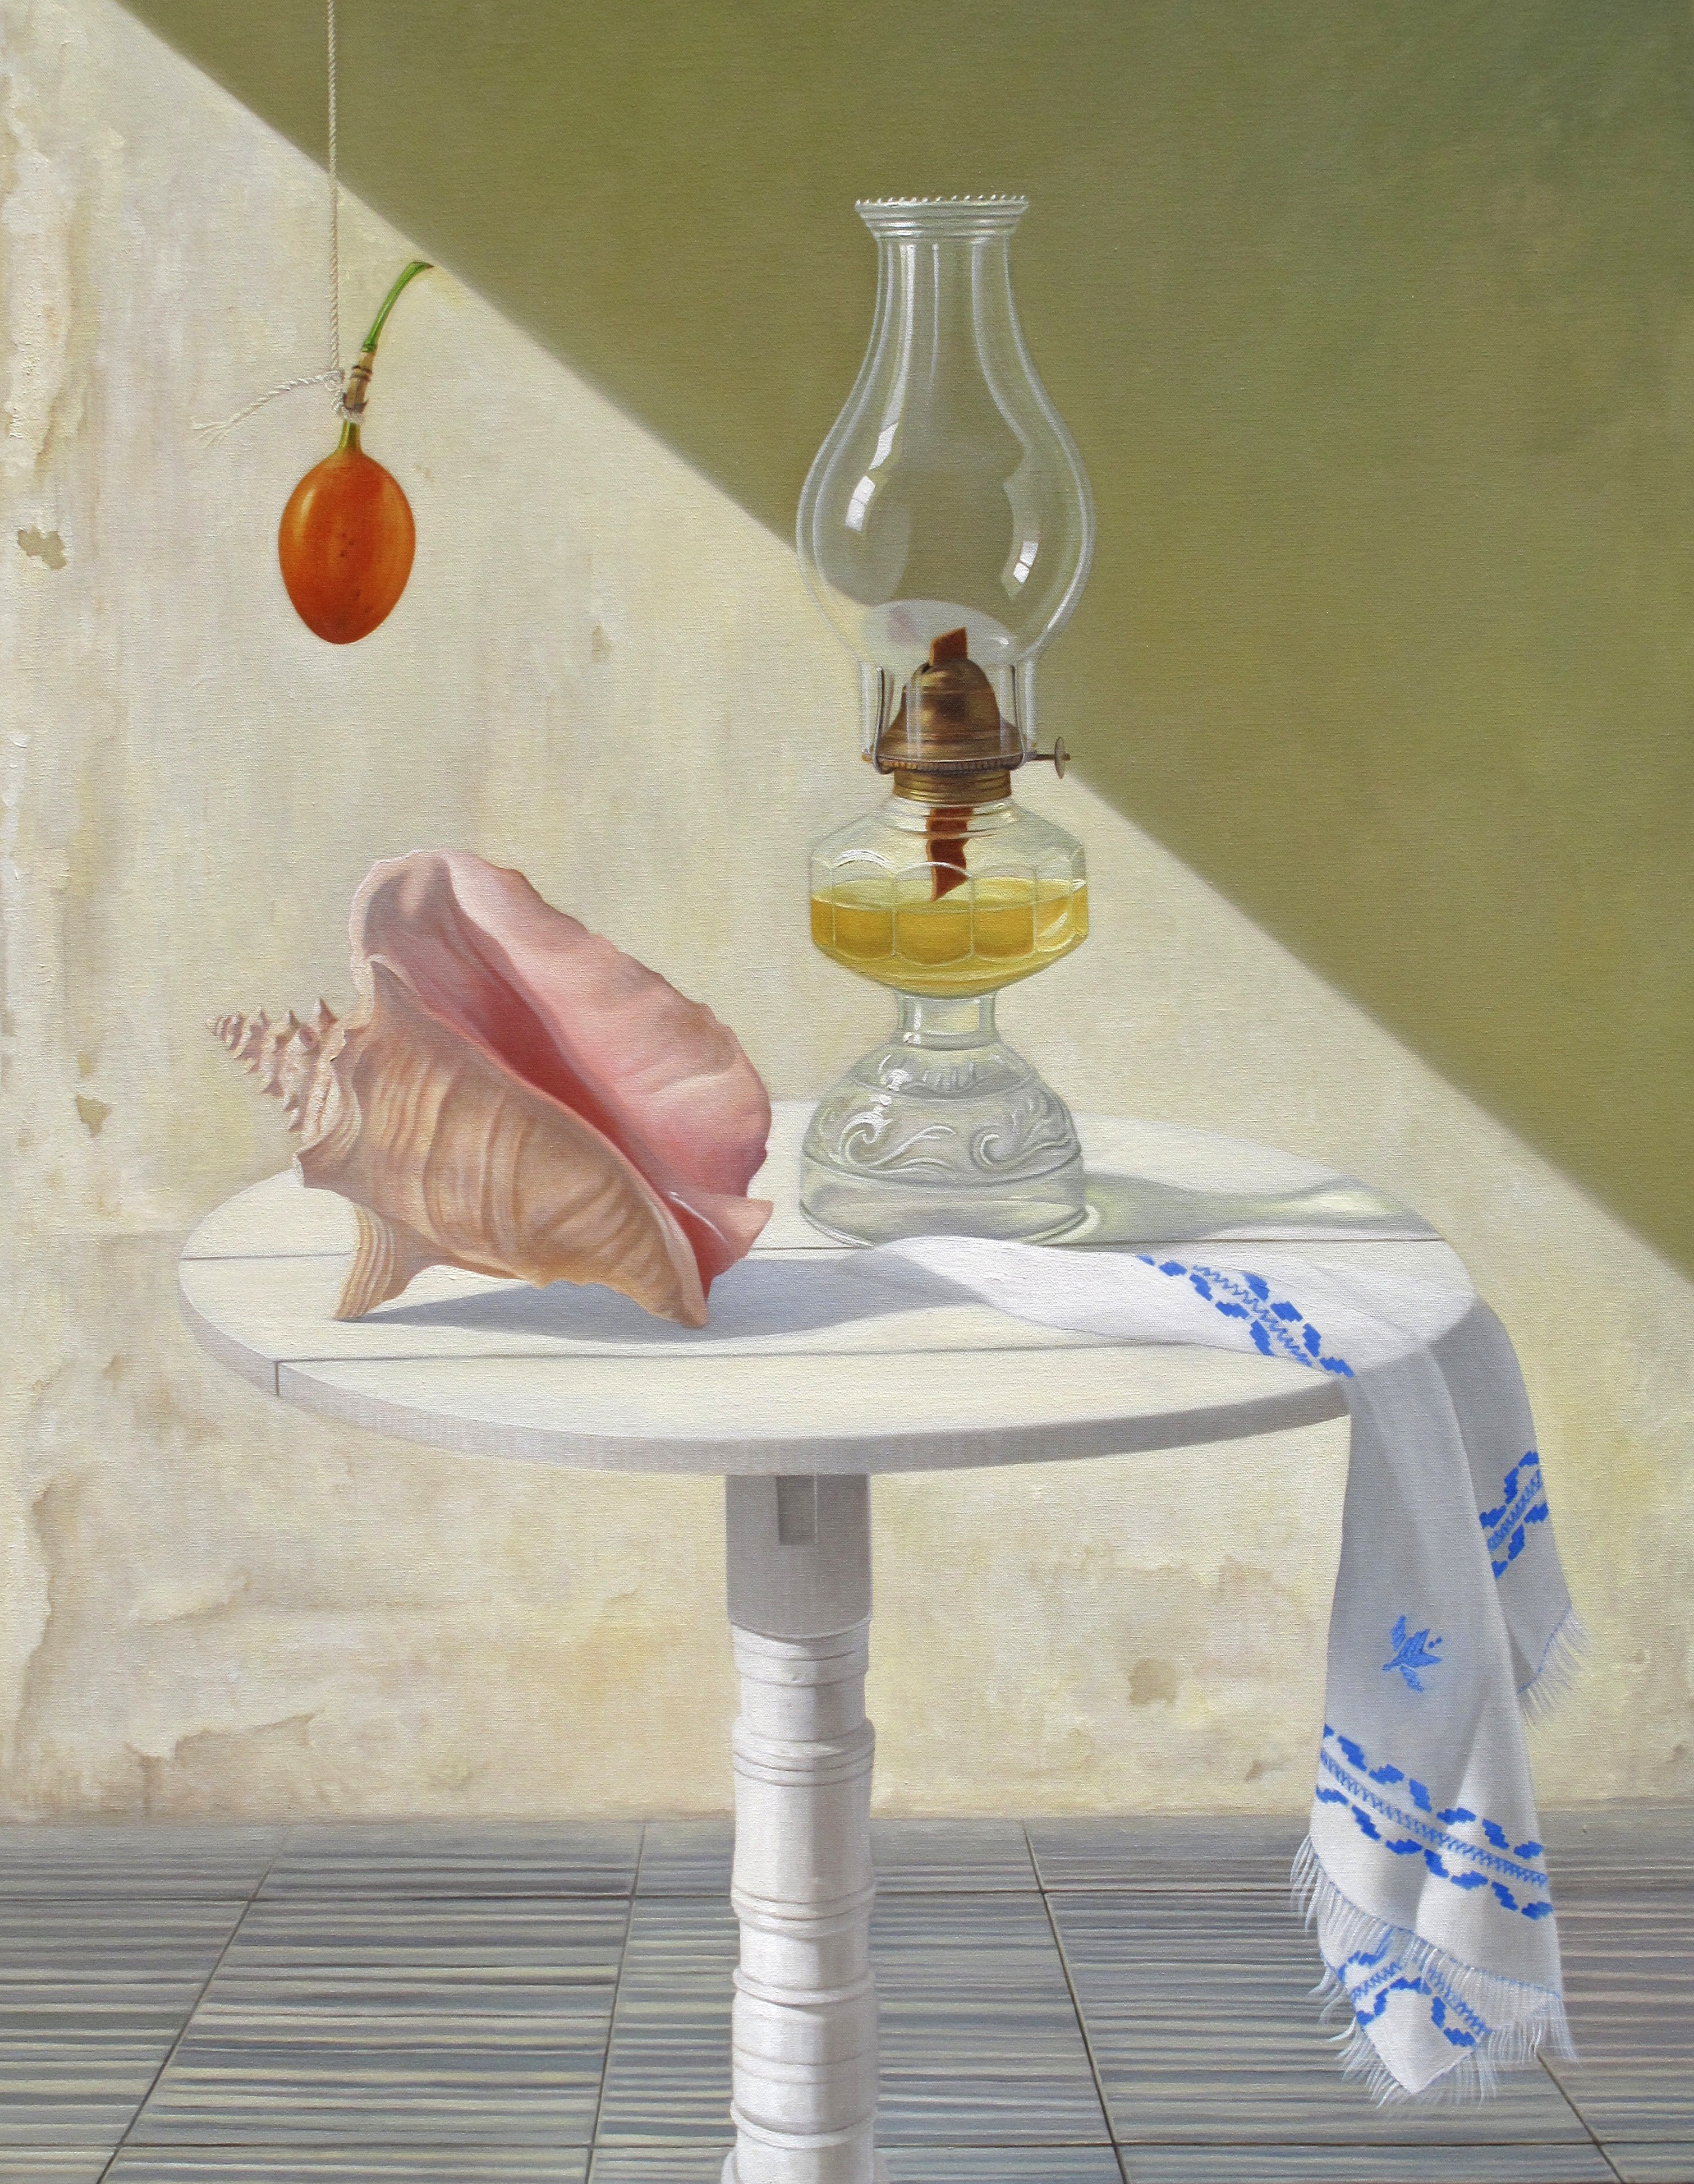 35.Still Life with Shell and lamp